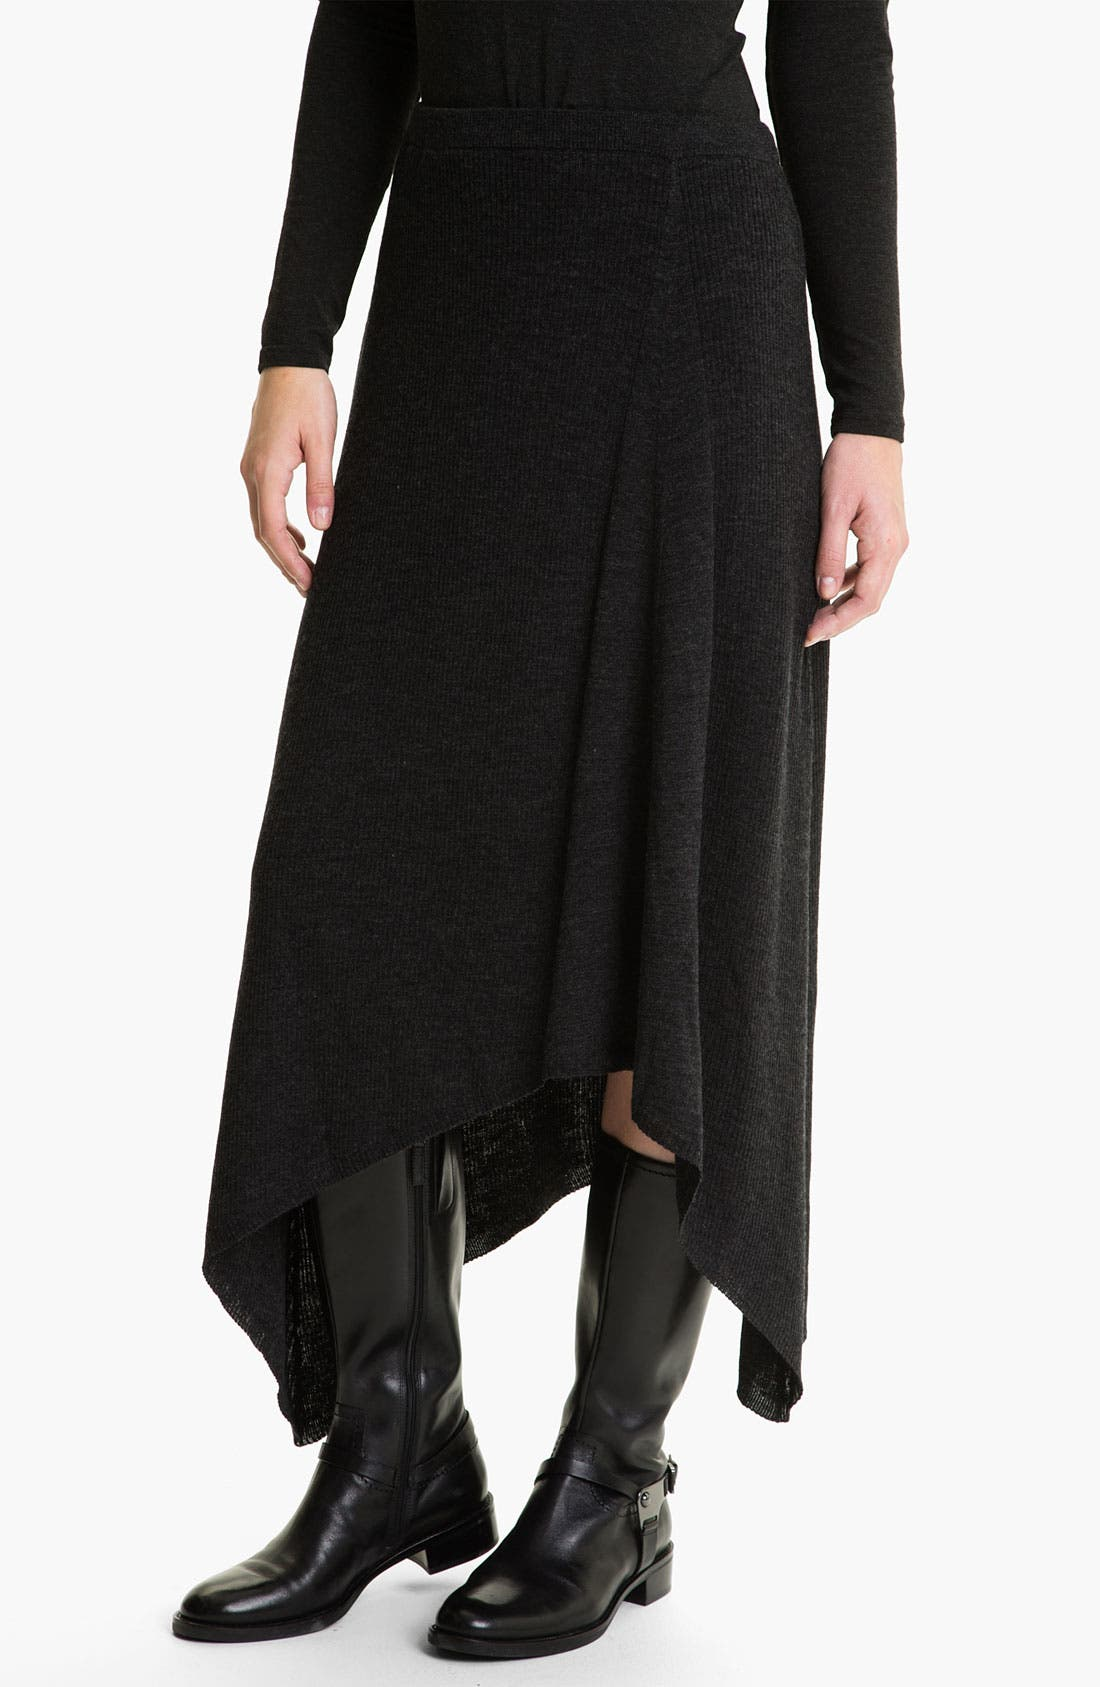 Alternate Image 1 Selected - Eileen Fisher Merino Jersey Rib Knit Skirt